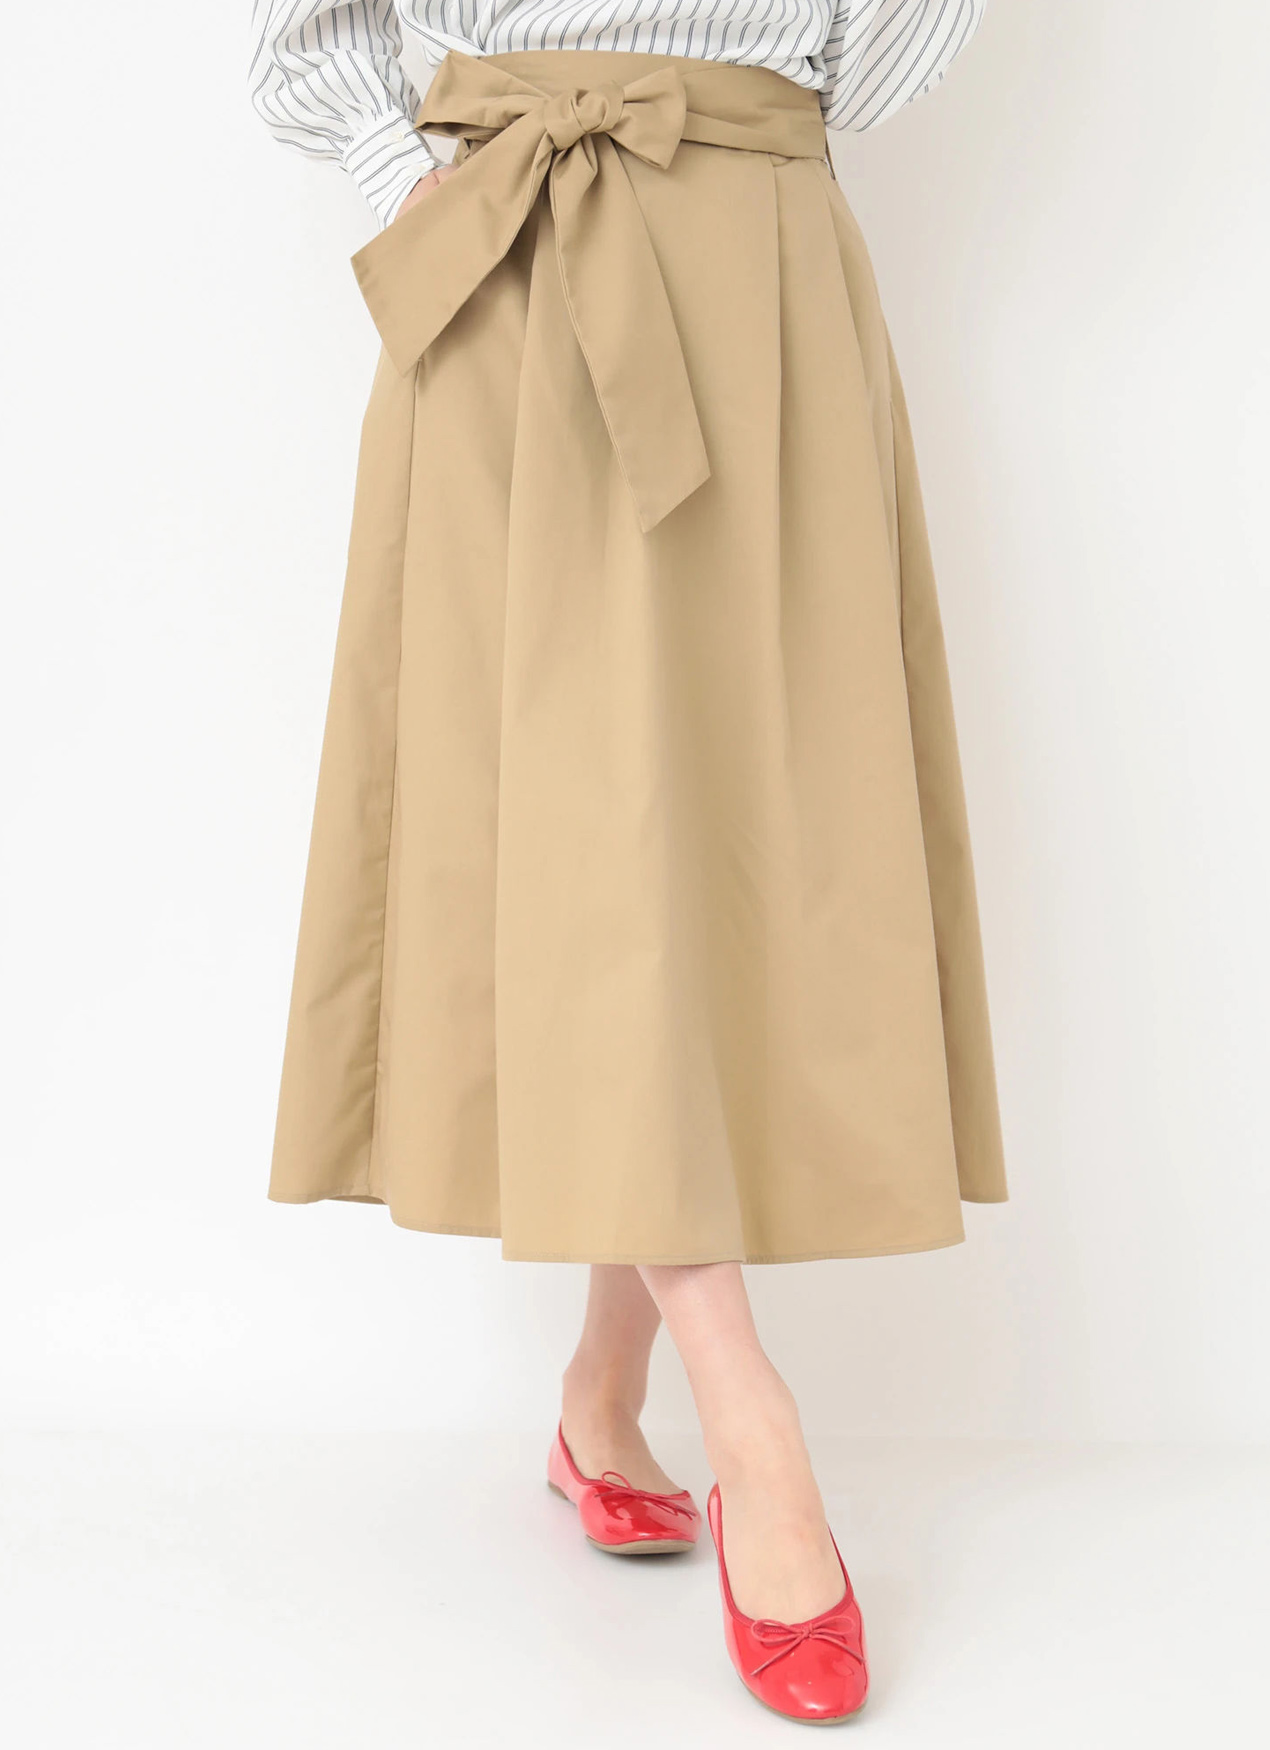 Earth, Music & Ecology Maya Skirt - Beige